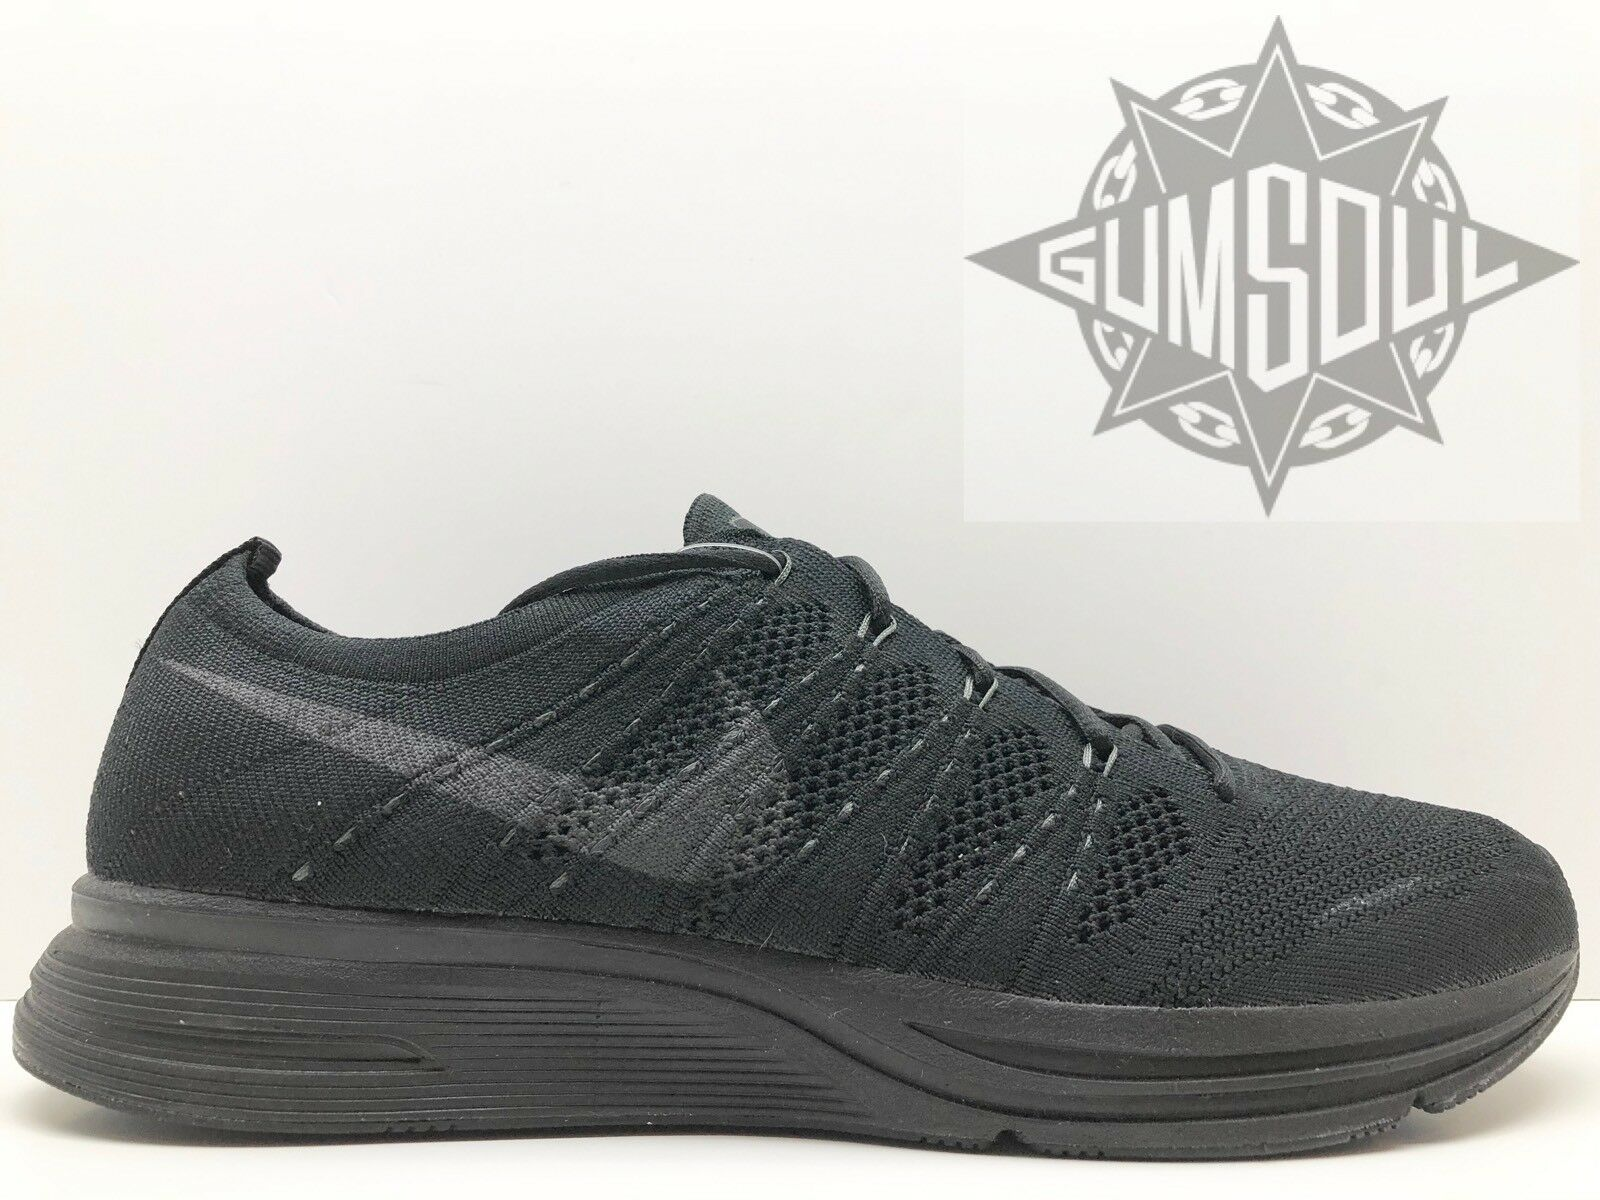 NIKE FLYKNIT TRAINER OG TRIPLE BLACK ANTHRACITE AH8396 004 Price reduction Special limited time